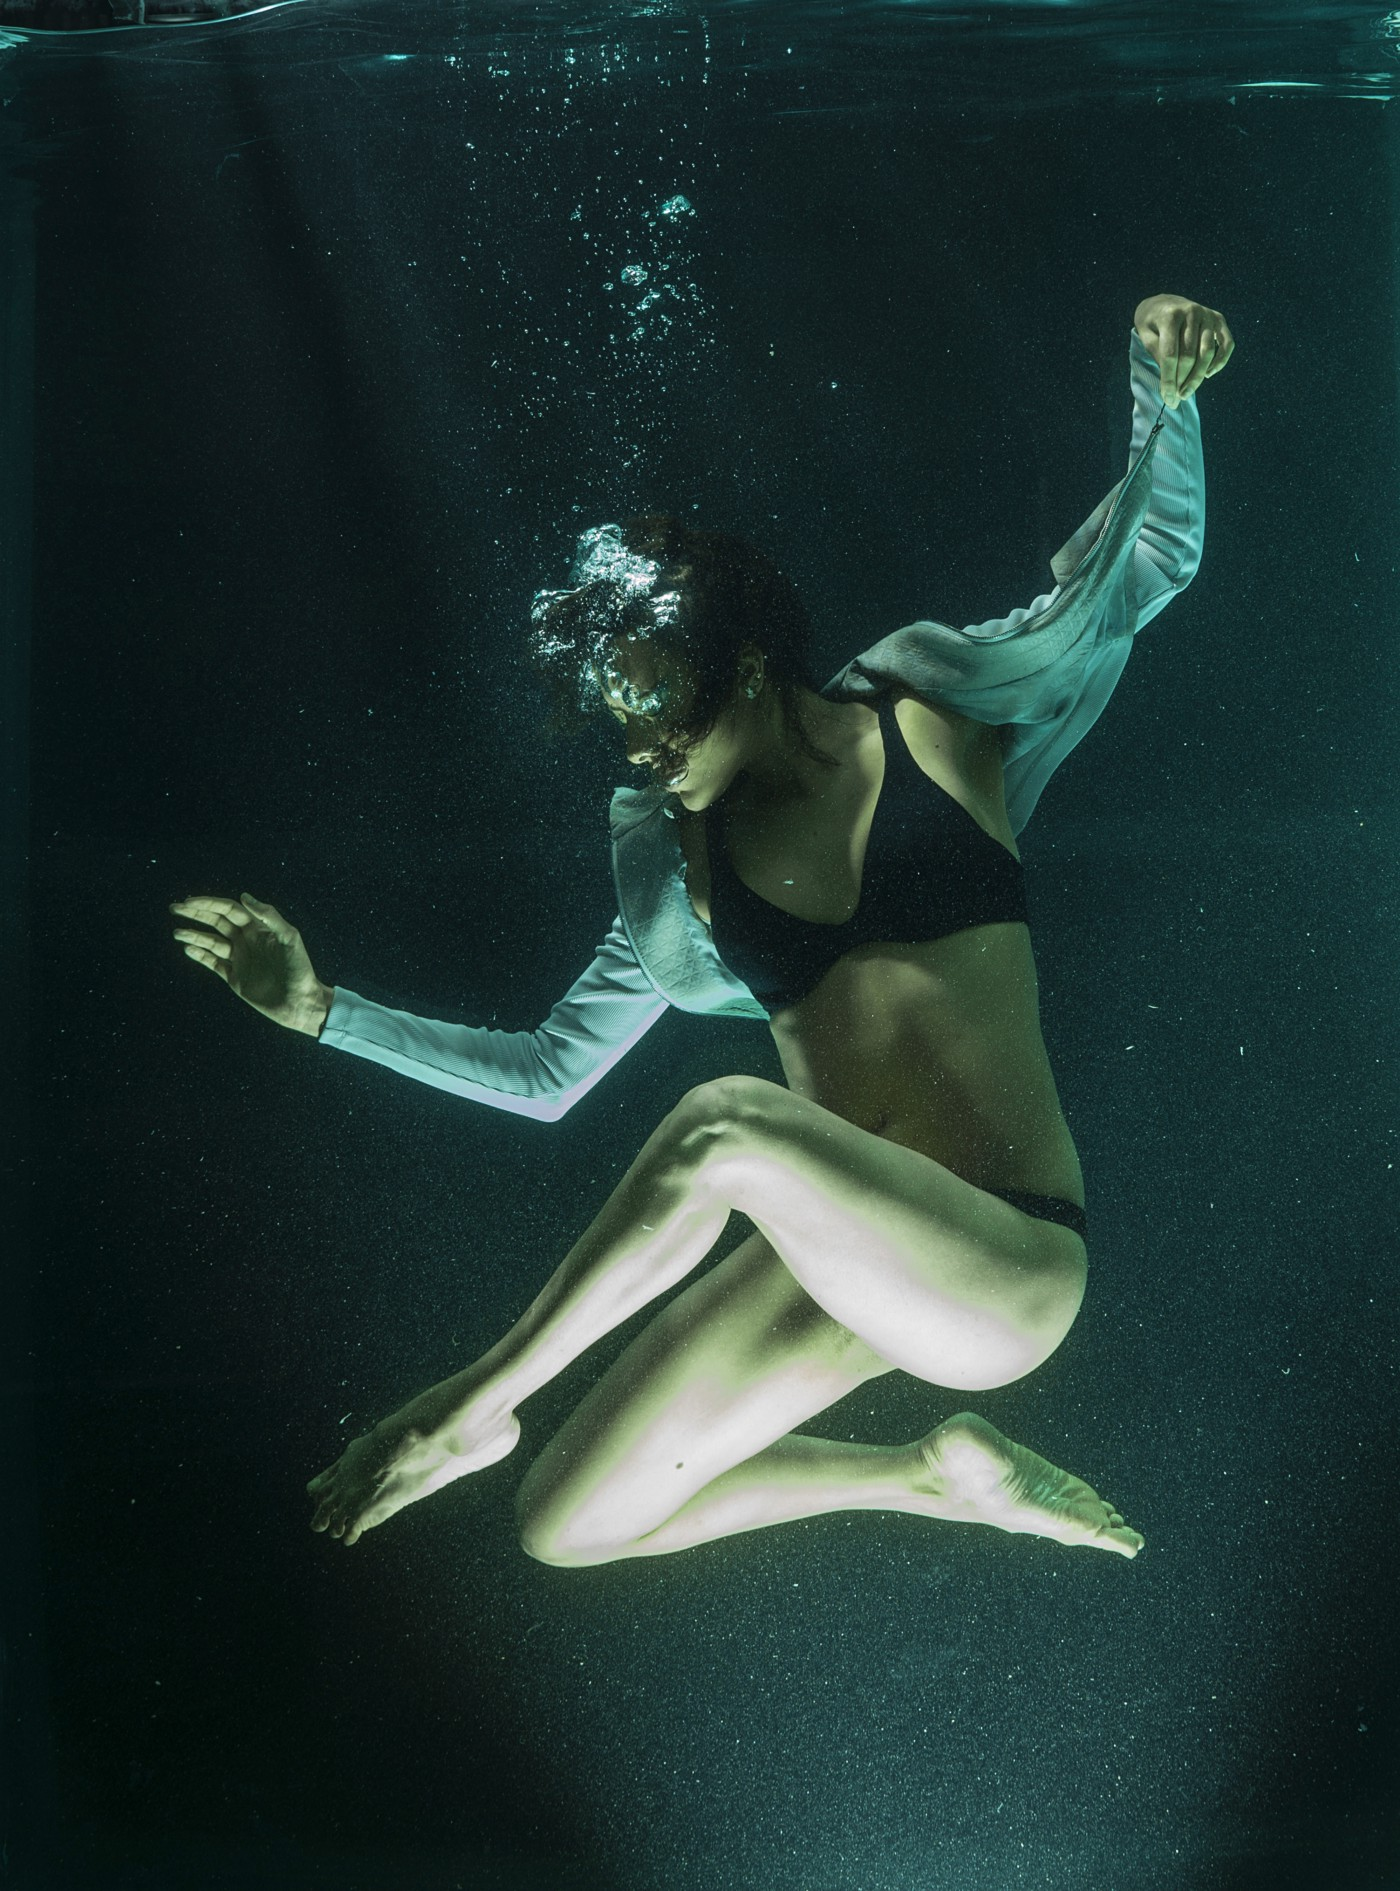 Underwater. Model poses in a dancer-like position with arms outreached and legs in a zigzag shape. Bubbles erupt from her mouth, slightly obscuring her serene expression.